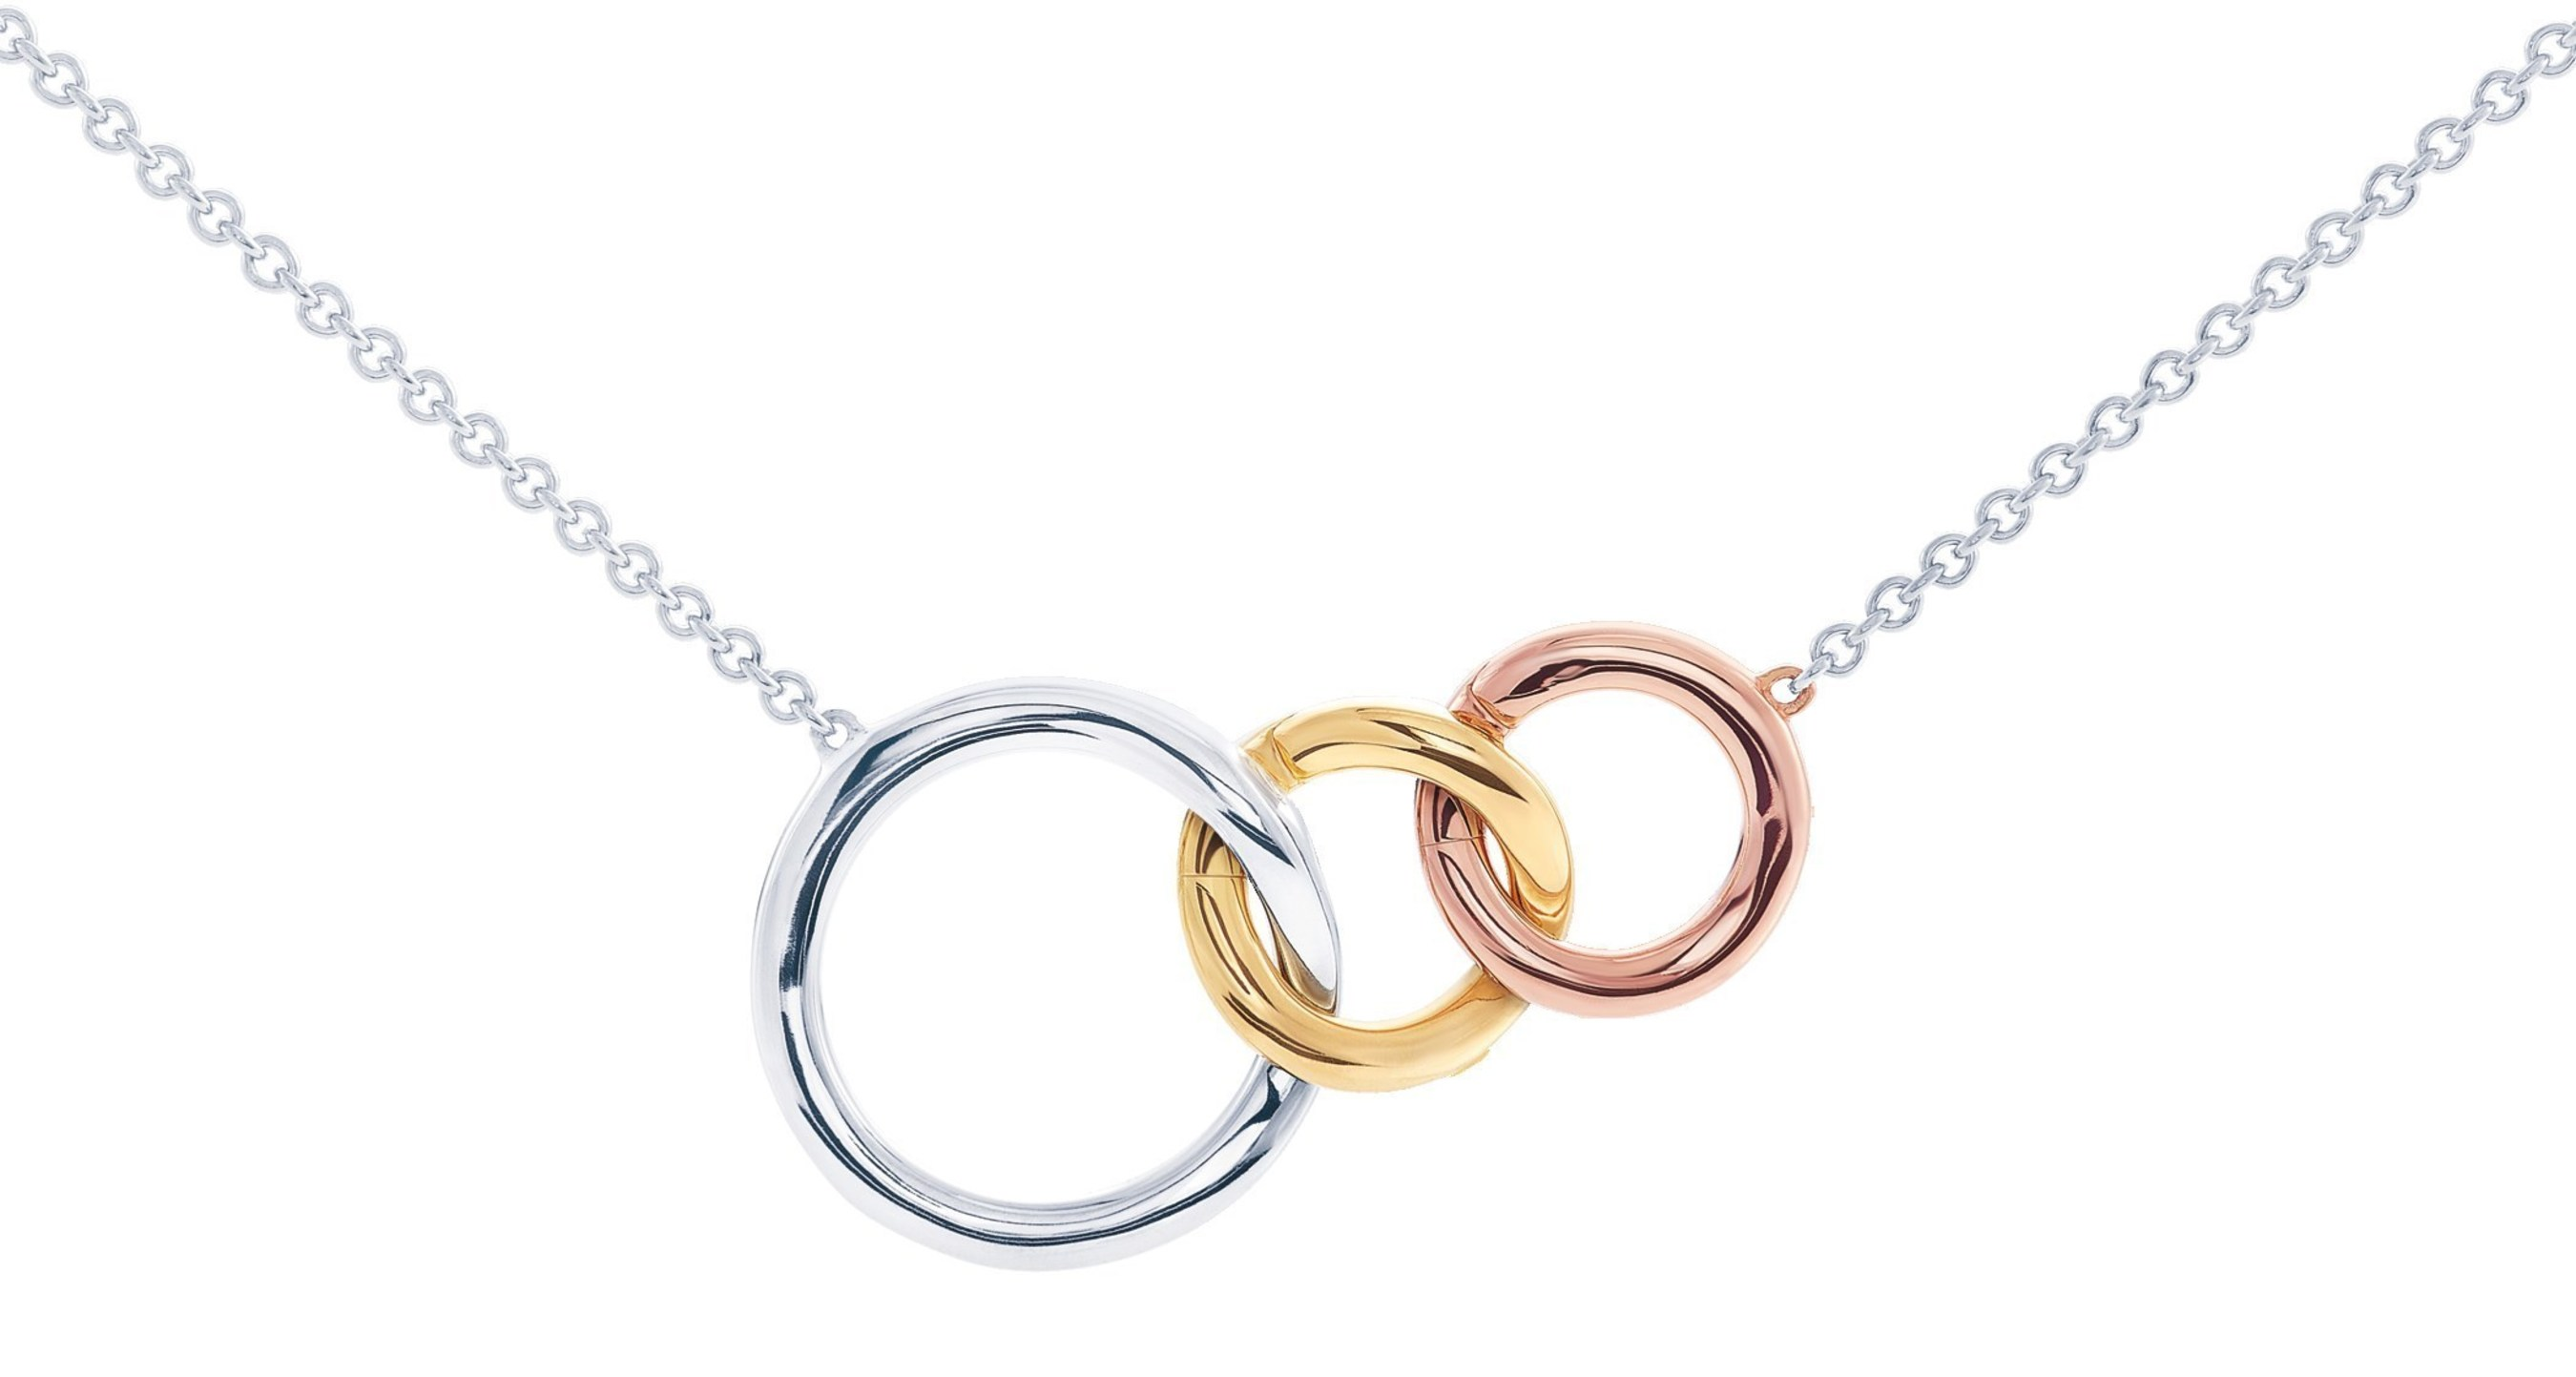 Kay(R) Jewelers Introduces Miracle Links(TM) Collection. Innovative Collection Features Unique Design to Celebrate the Miracle of Motherhood.